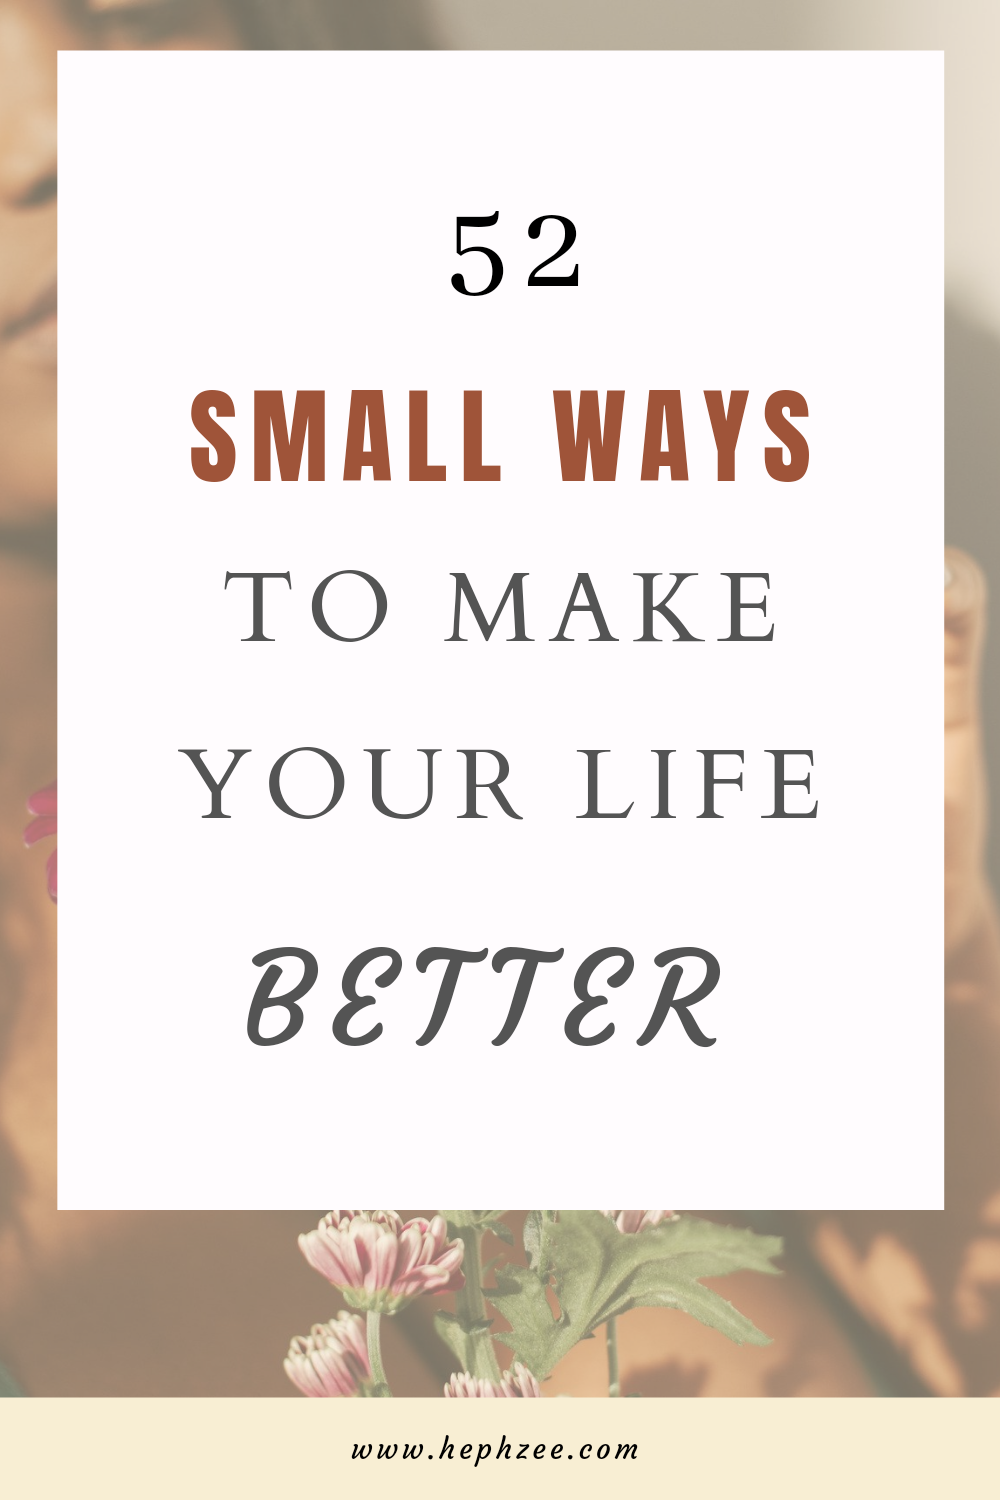 Small ways to make your life better